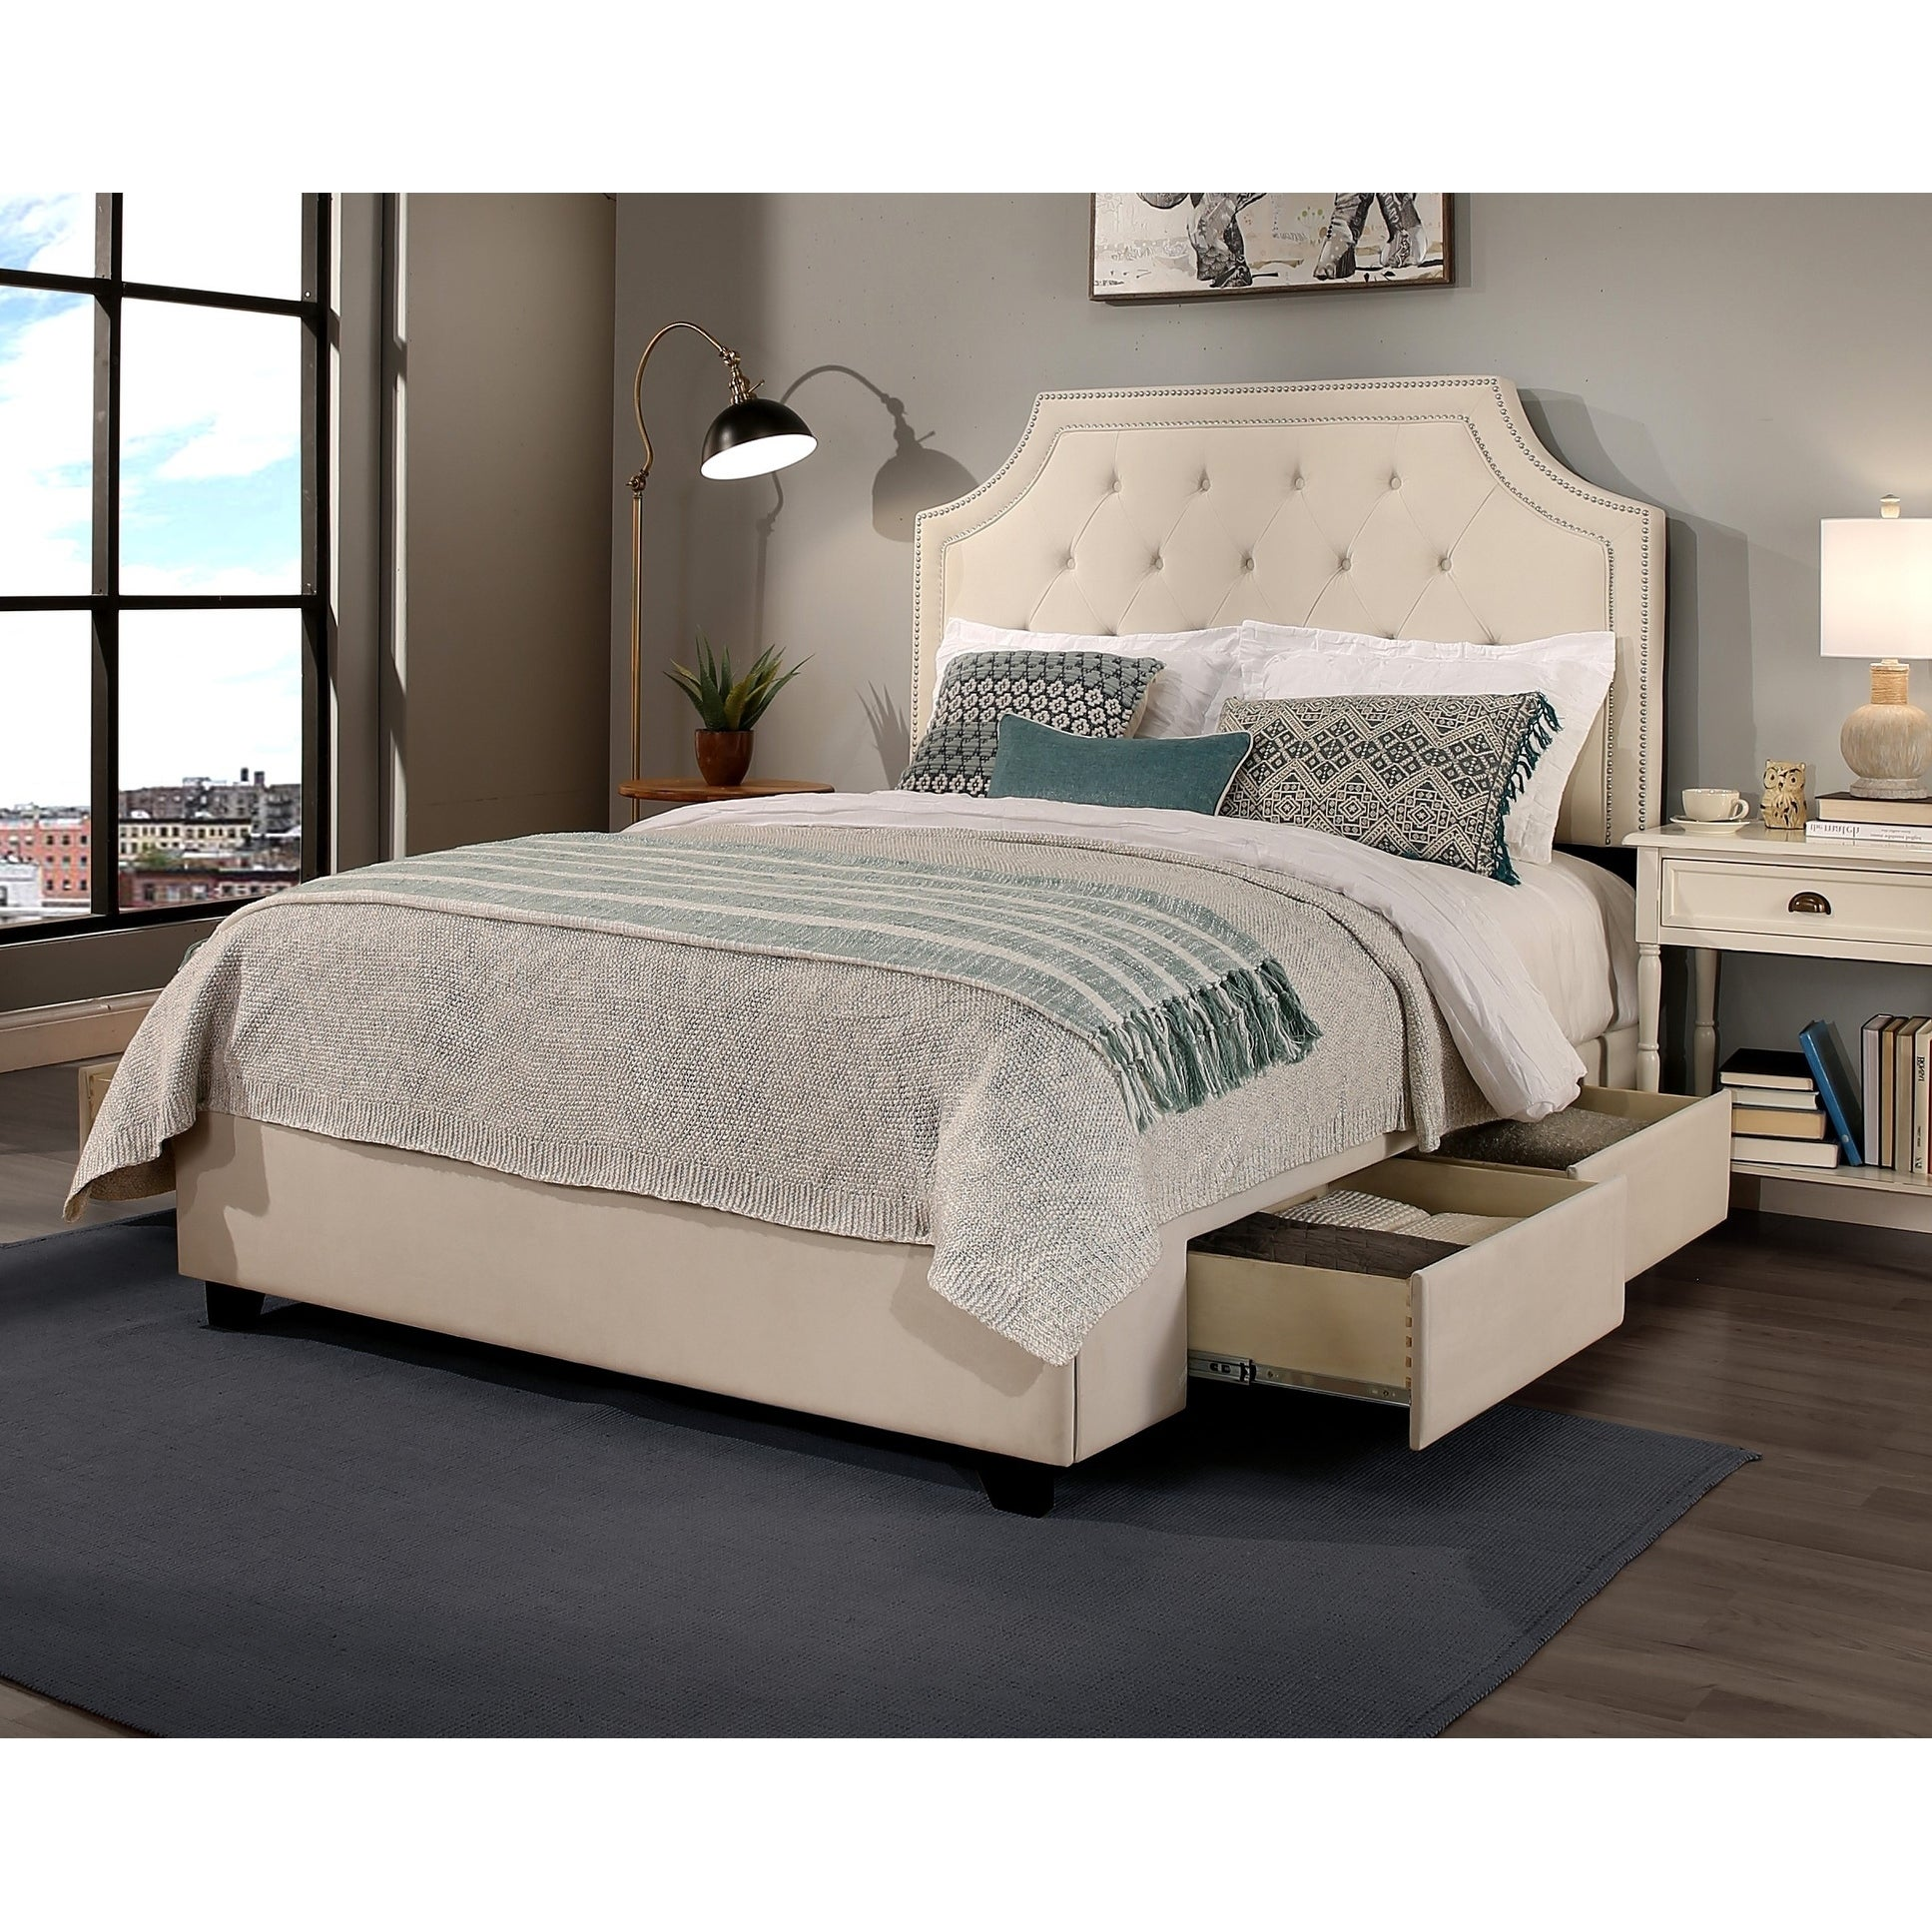 Audrey Upholstered Tufted Storage Bed With Nail Head Trim Size California King On Sale Overstock 21642676